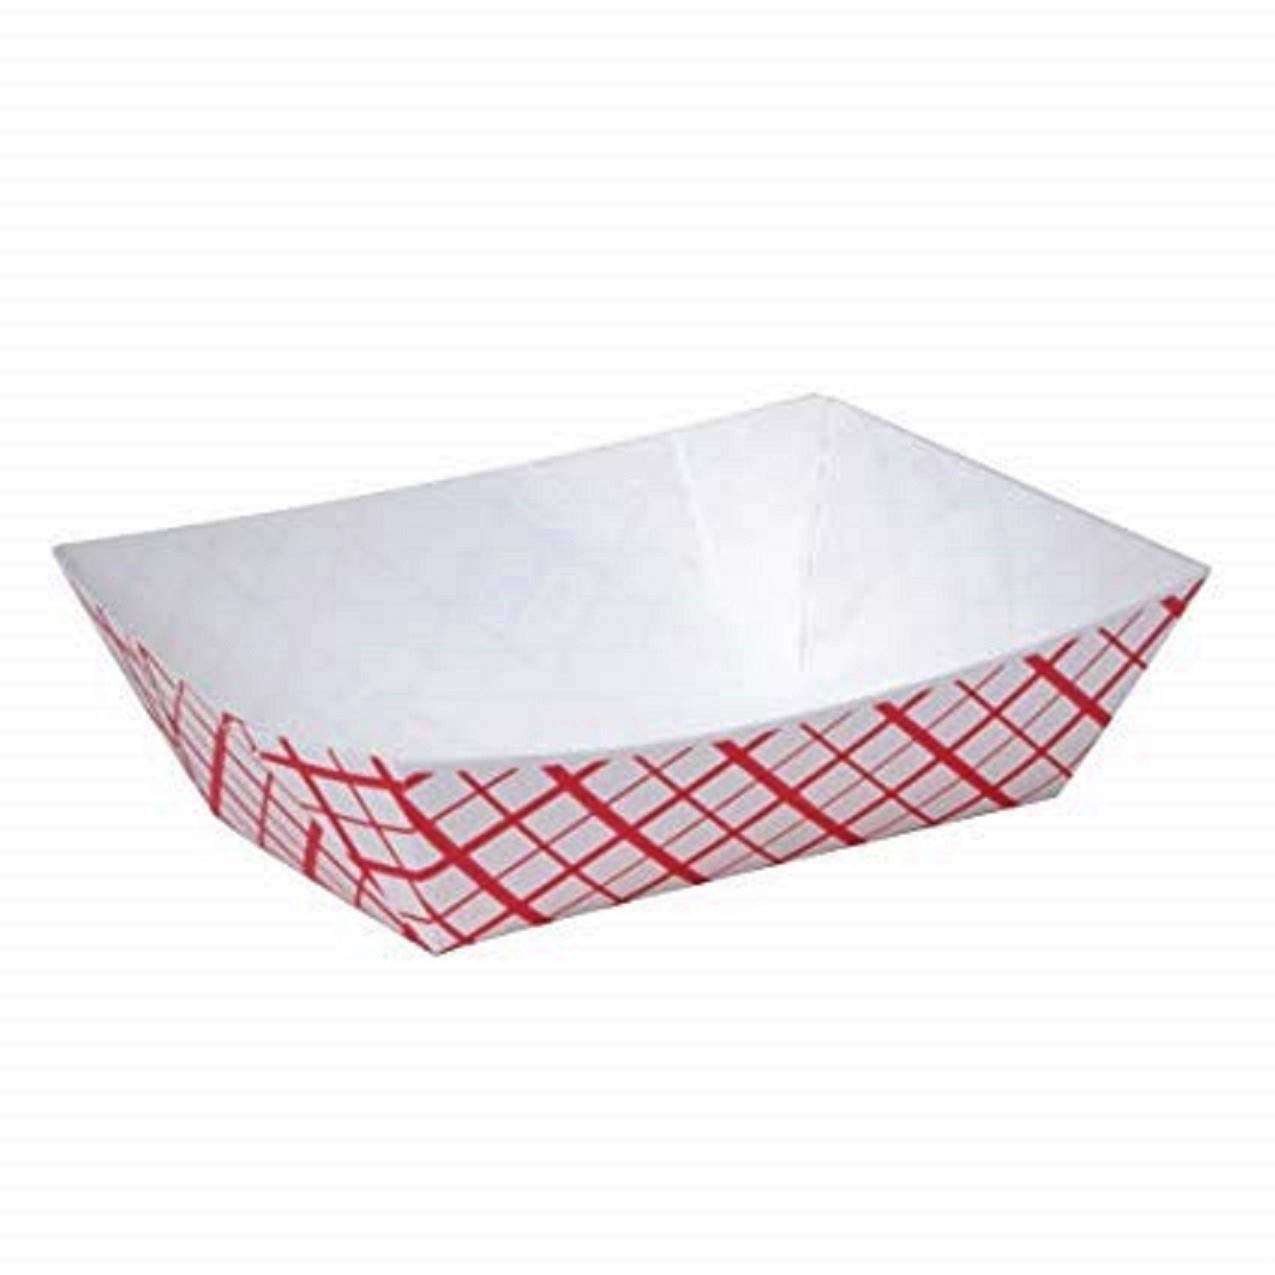 Red Check 1/4 Lb (#25) Disposable Paper Trays – Mini Food Serving Checkered Tray Boat Bowl for Carnivals, Fairs, Festivals and Picnics - Made in USA (Pack of 200)